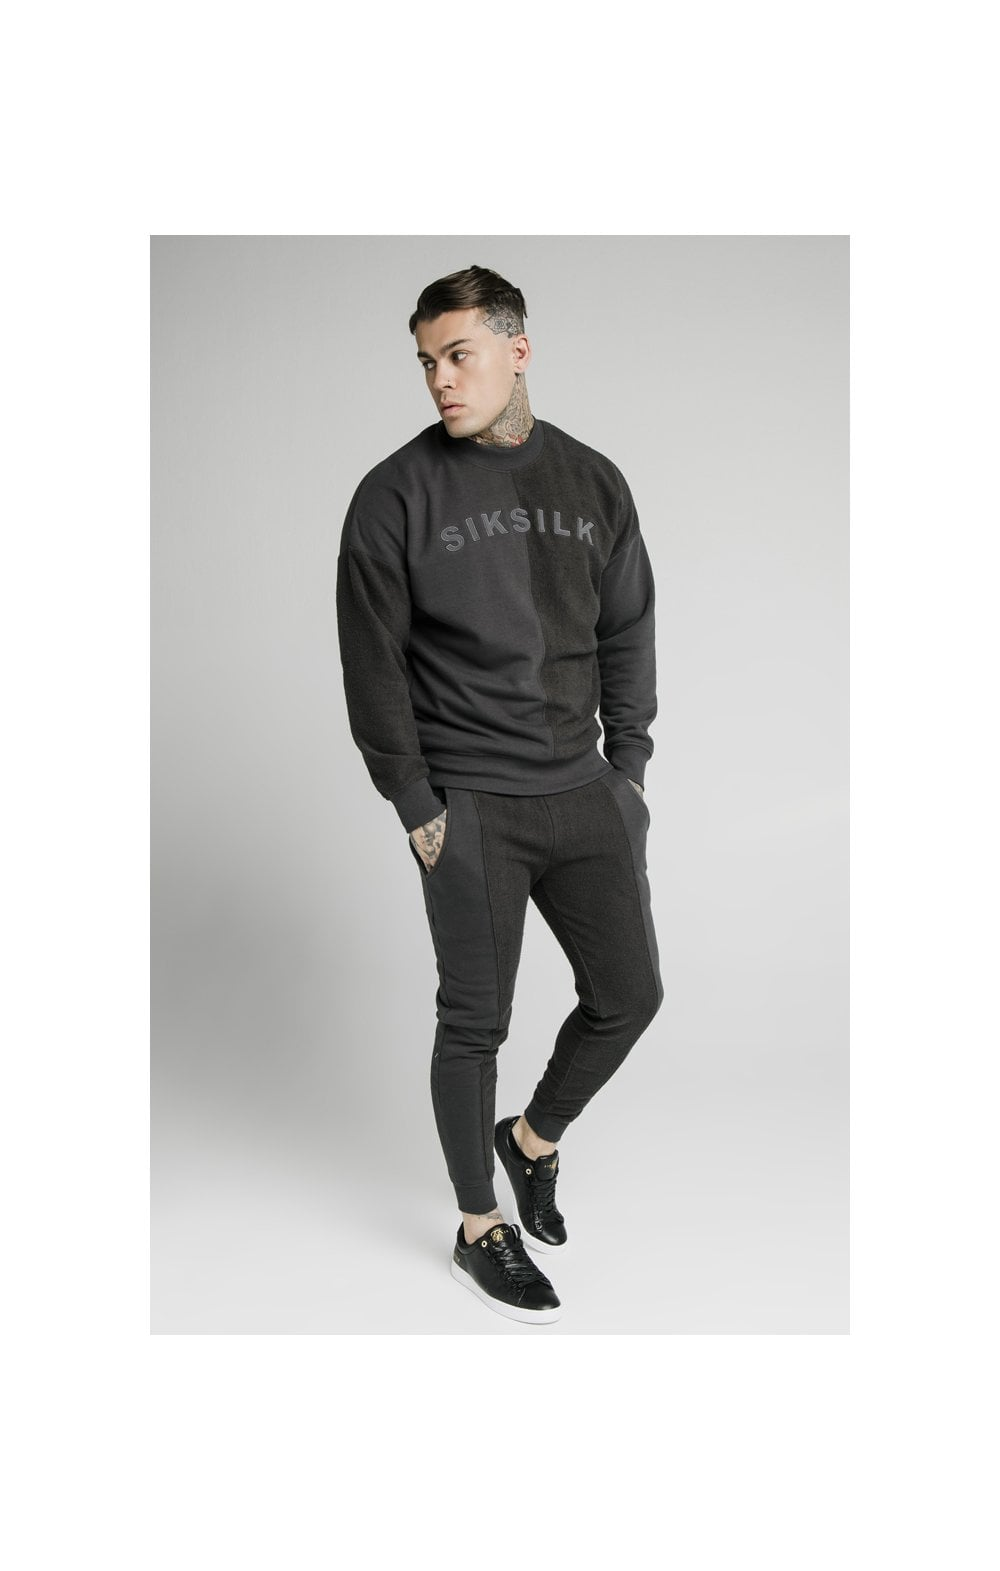 Load image into Gallery viewer, SikSilk Half & Half Crew Sweater – Washed Grey (4)